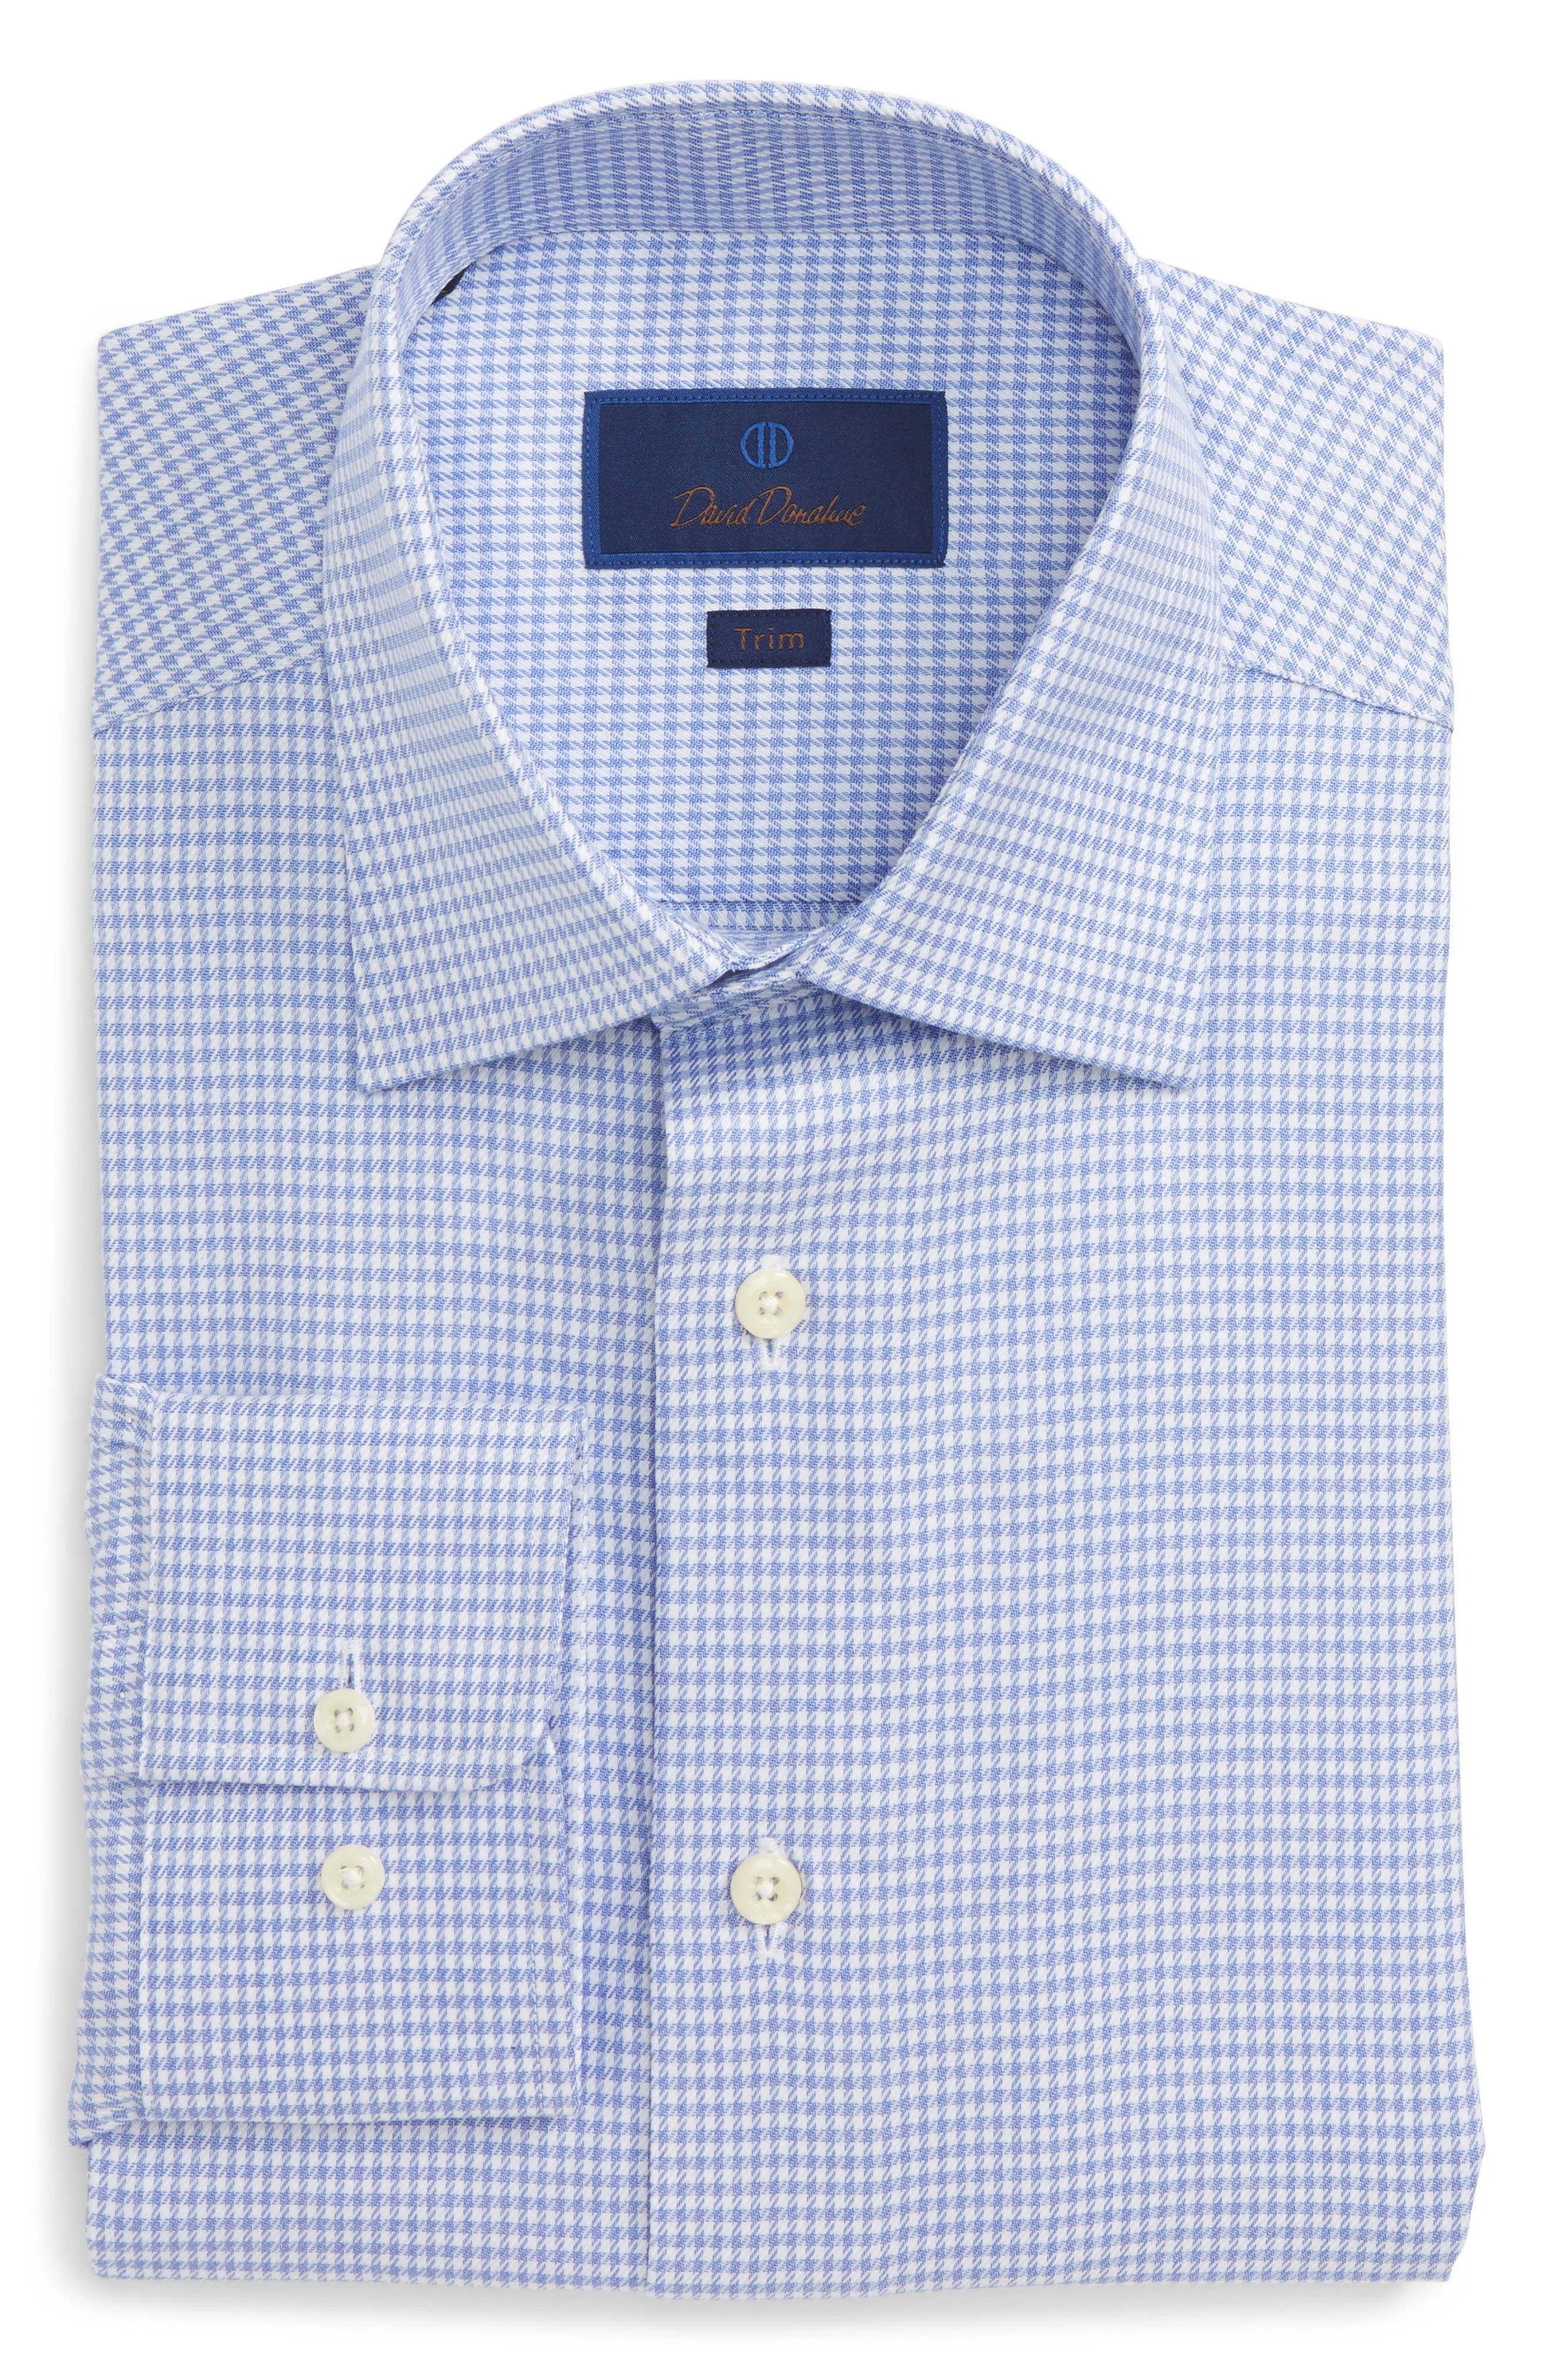 Trim Fit Houndstooth Dress Shirt,                             Main thumbnail 1, color,                             423